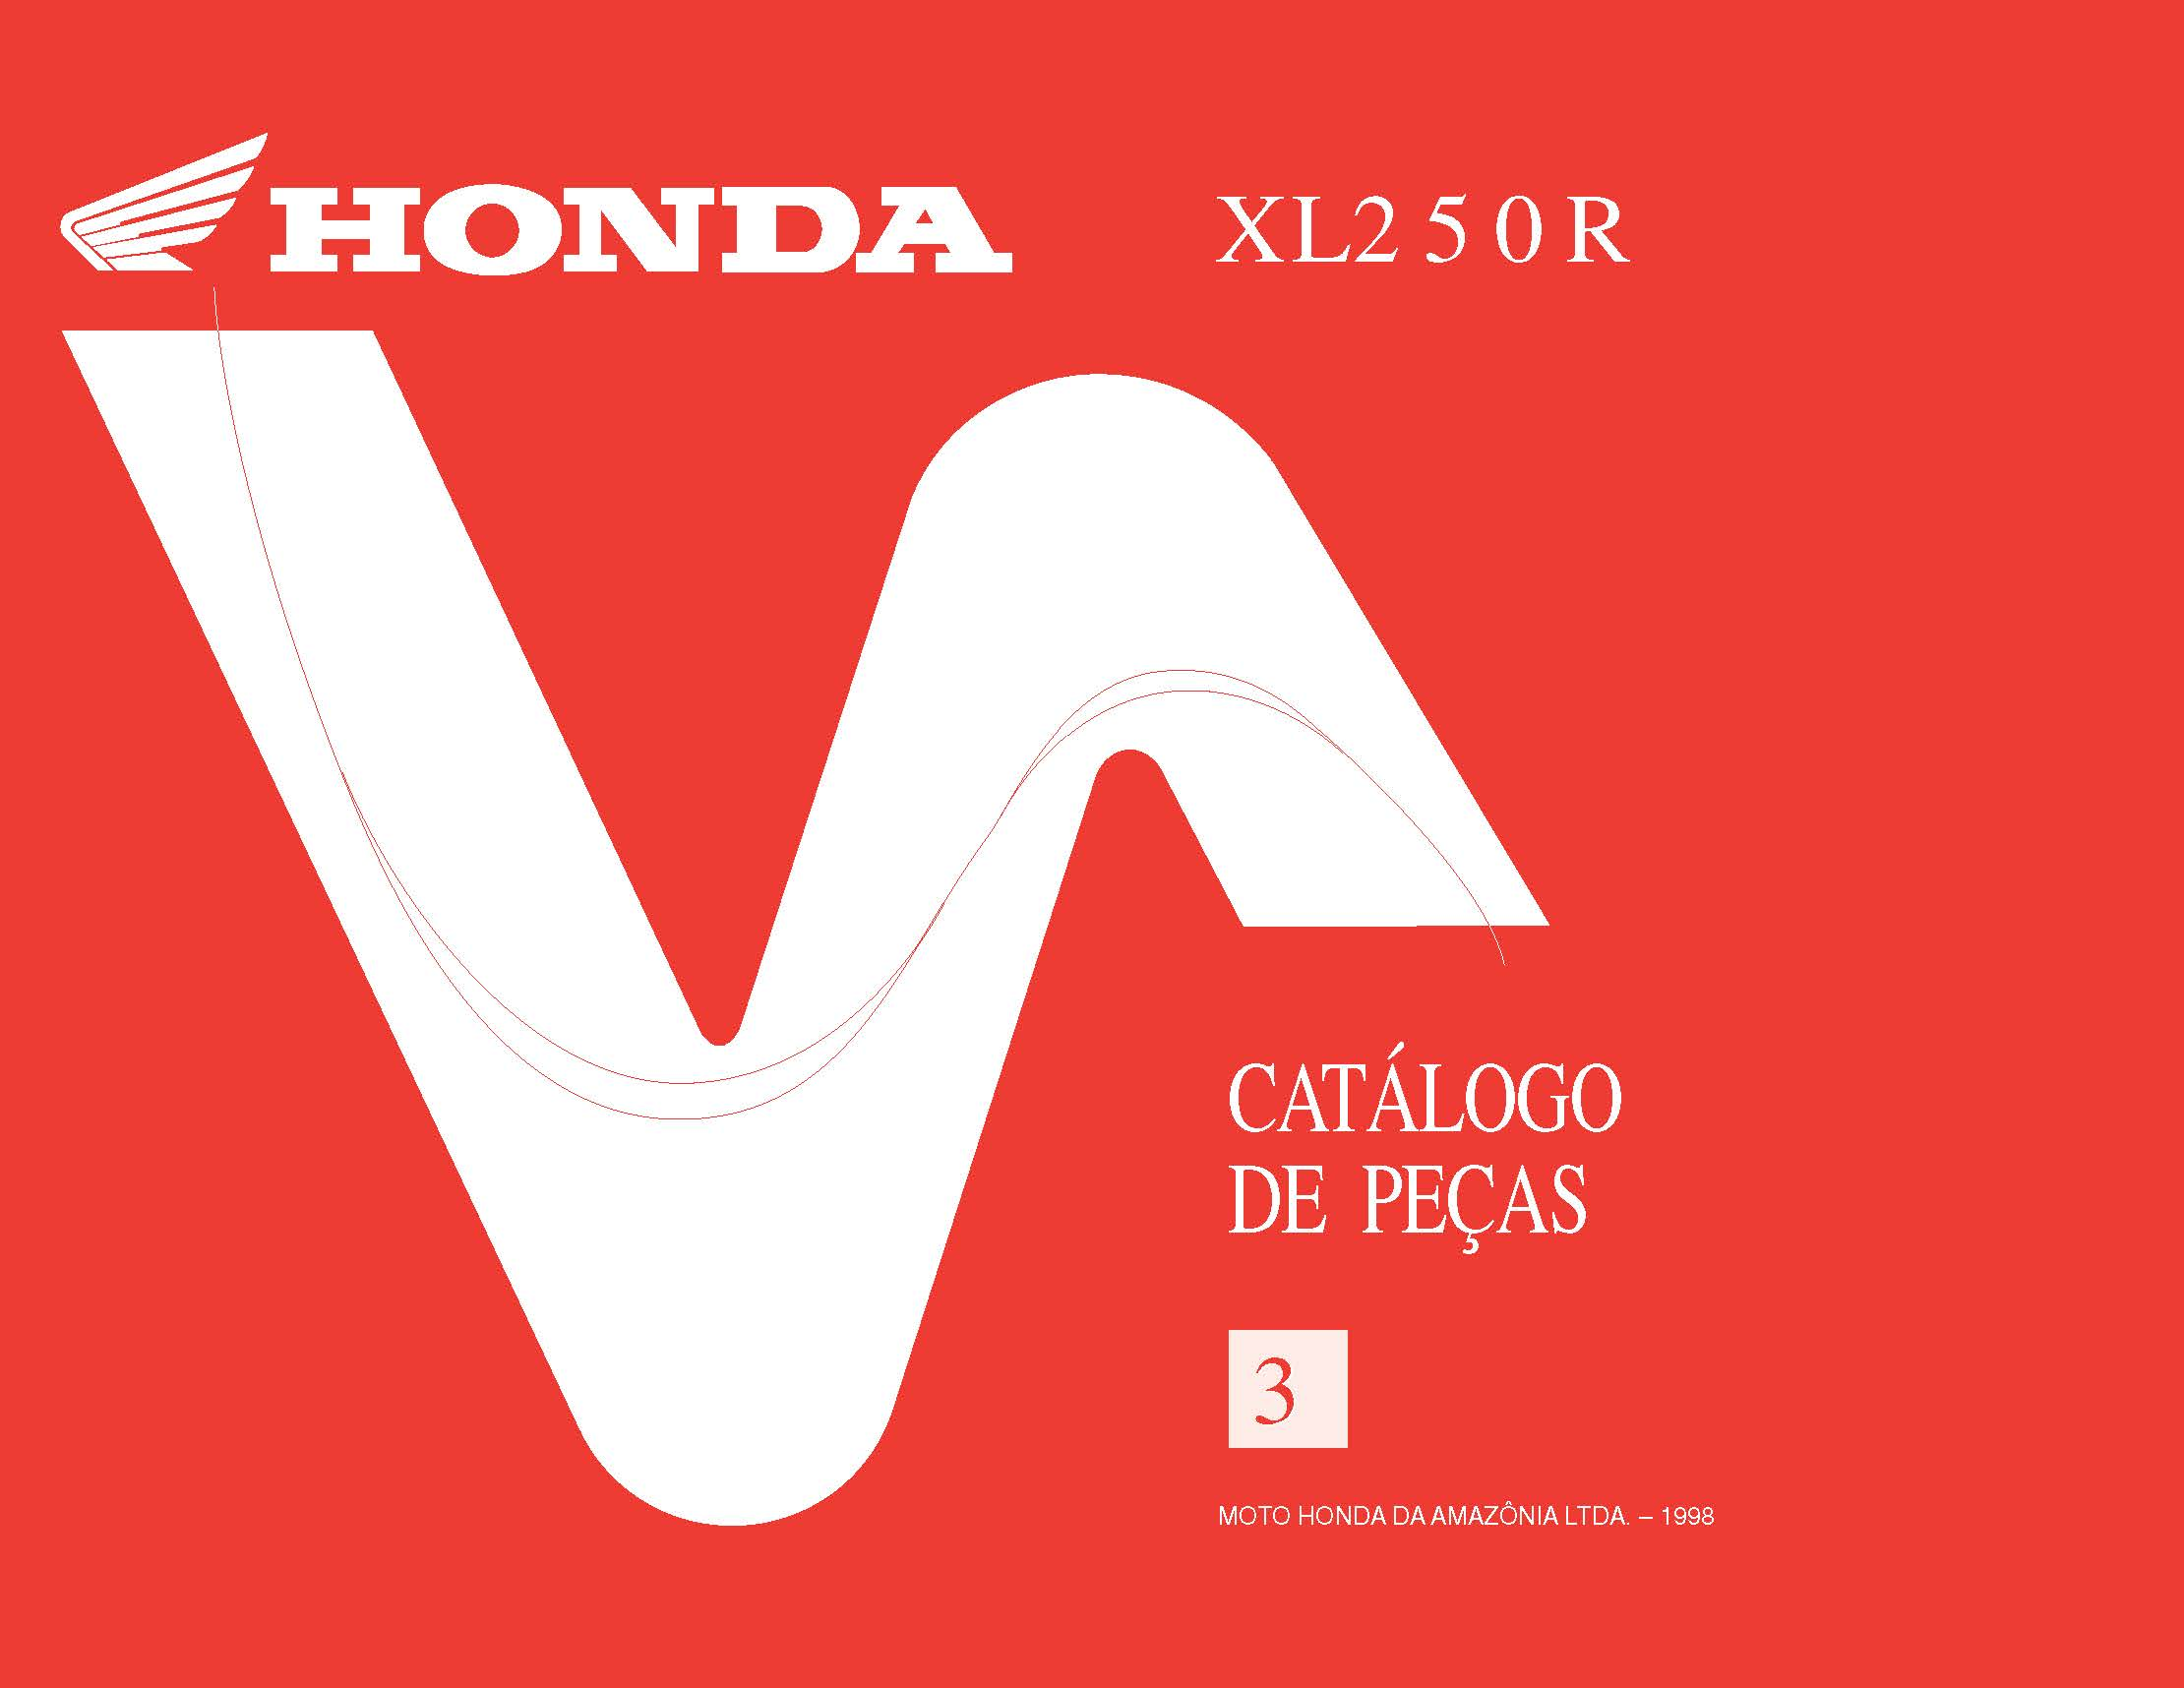 Parts List for Honda XL250R (1998) (Portugese)